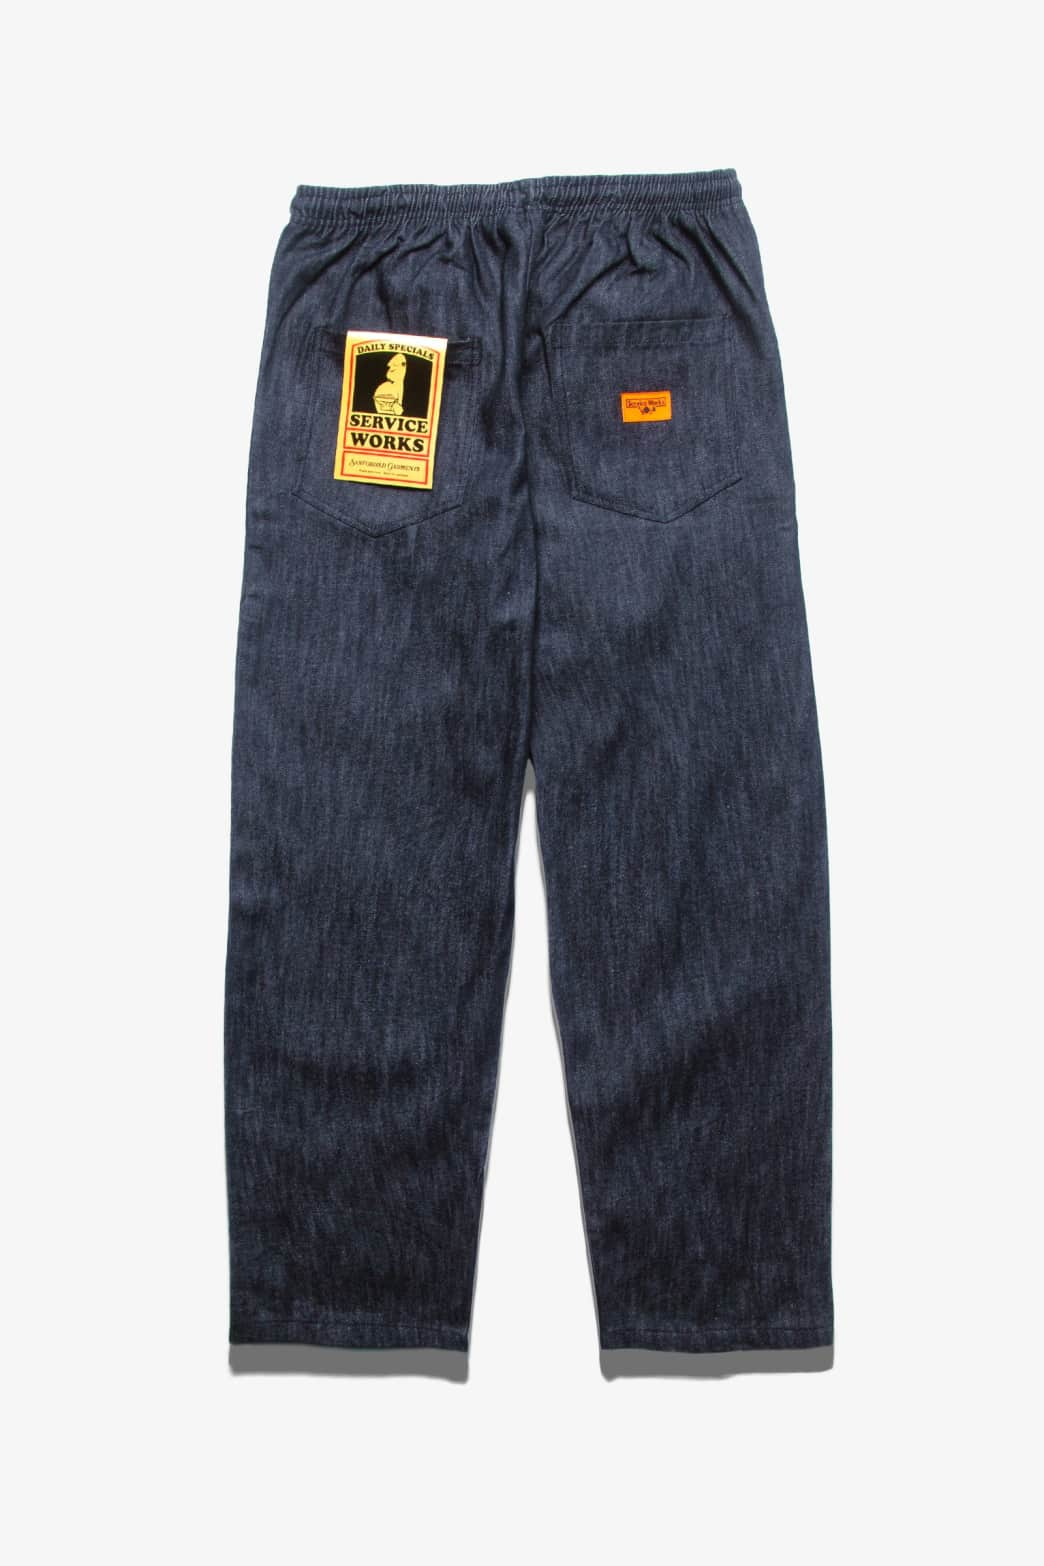 Service Works - Classic Chef Pants - Indigo Denim   Trousers by Service Works 1